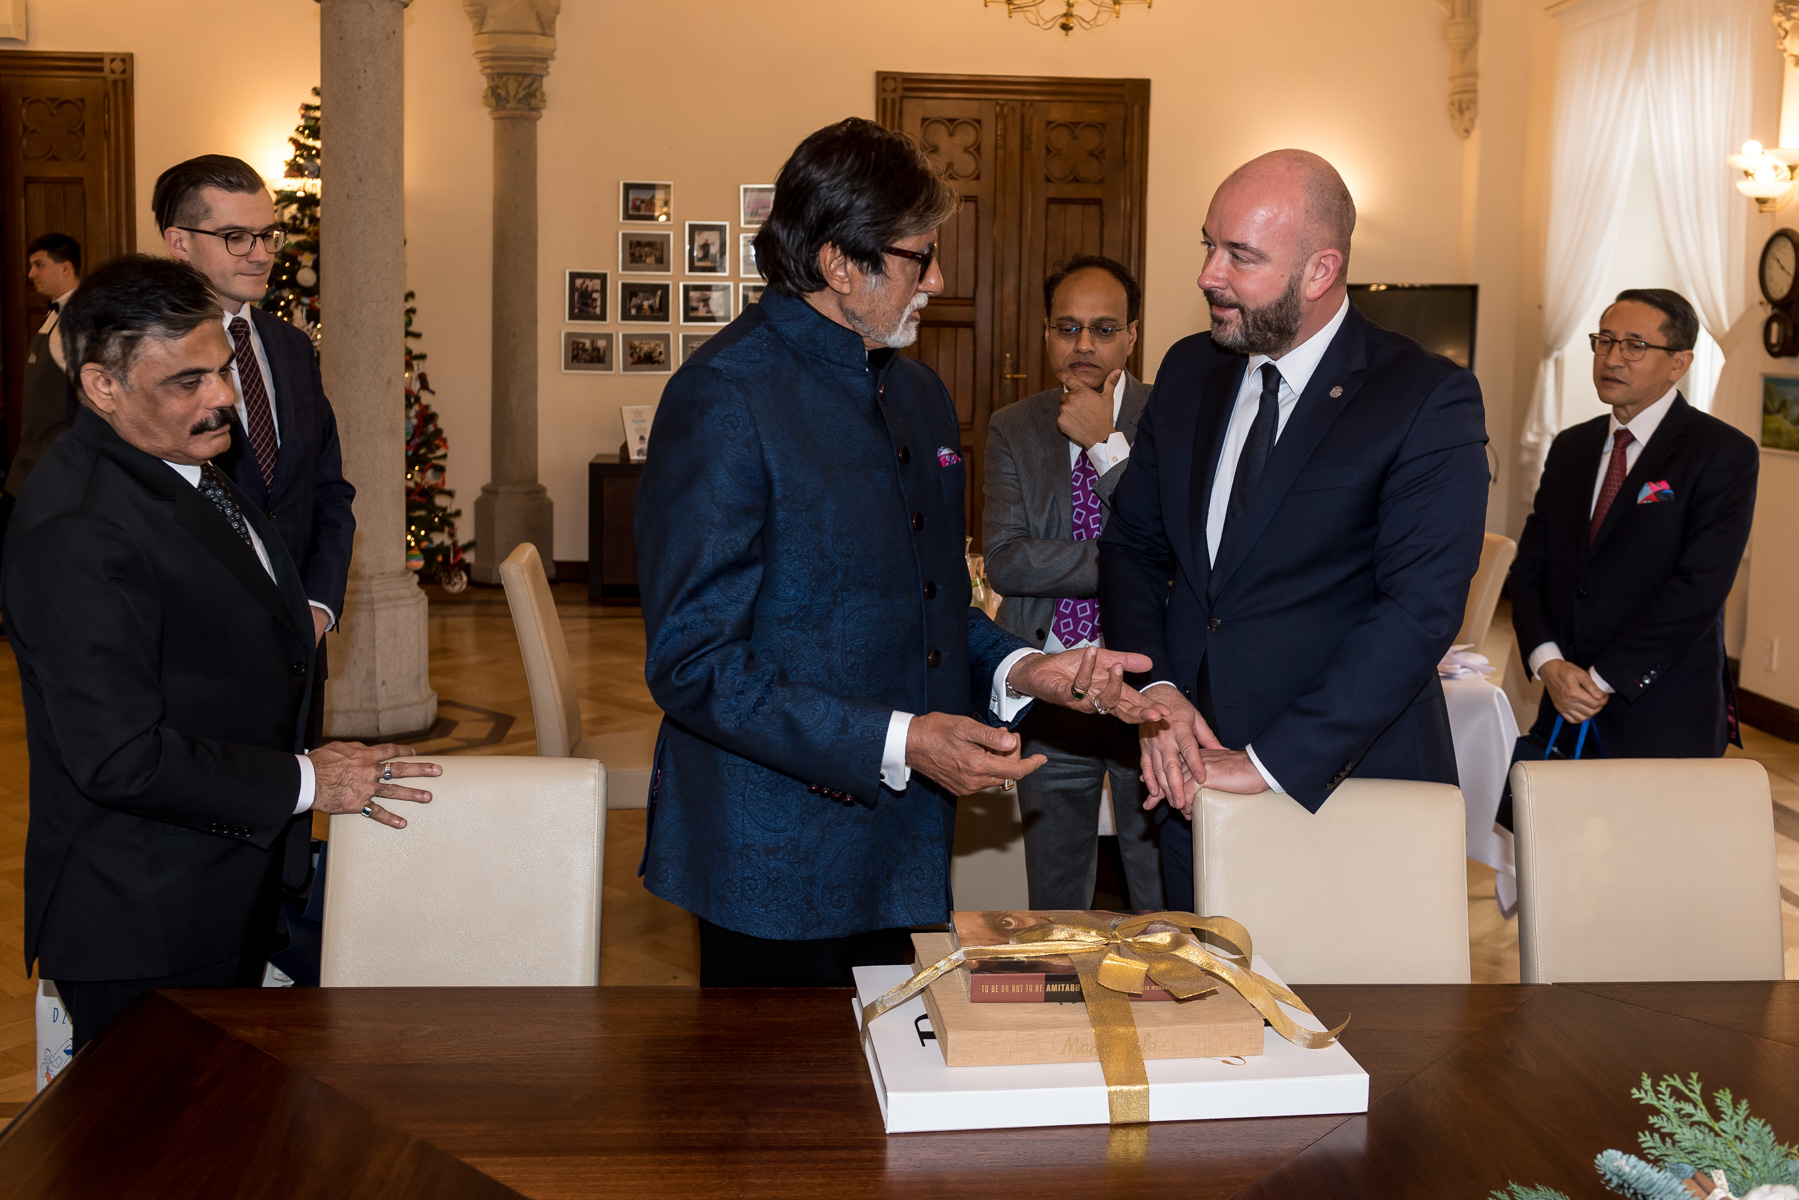 Amitabh Bachchan was invited to Wrocław by Jacek Sutryk, President of Wrocław in March 2019 when he visited Mumbai